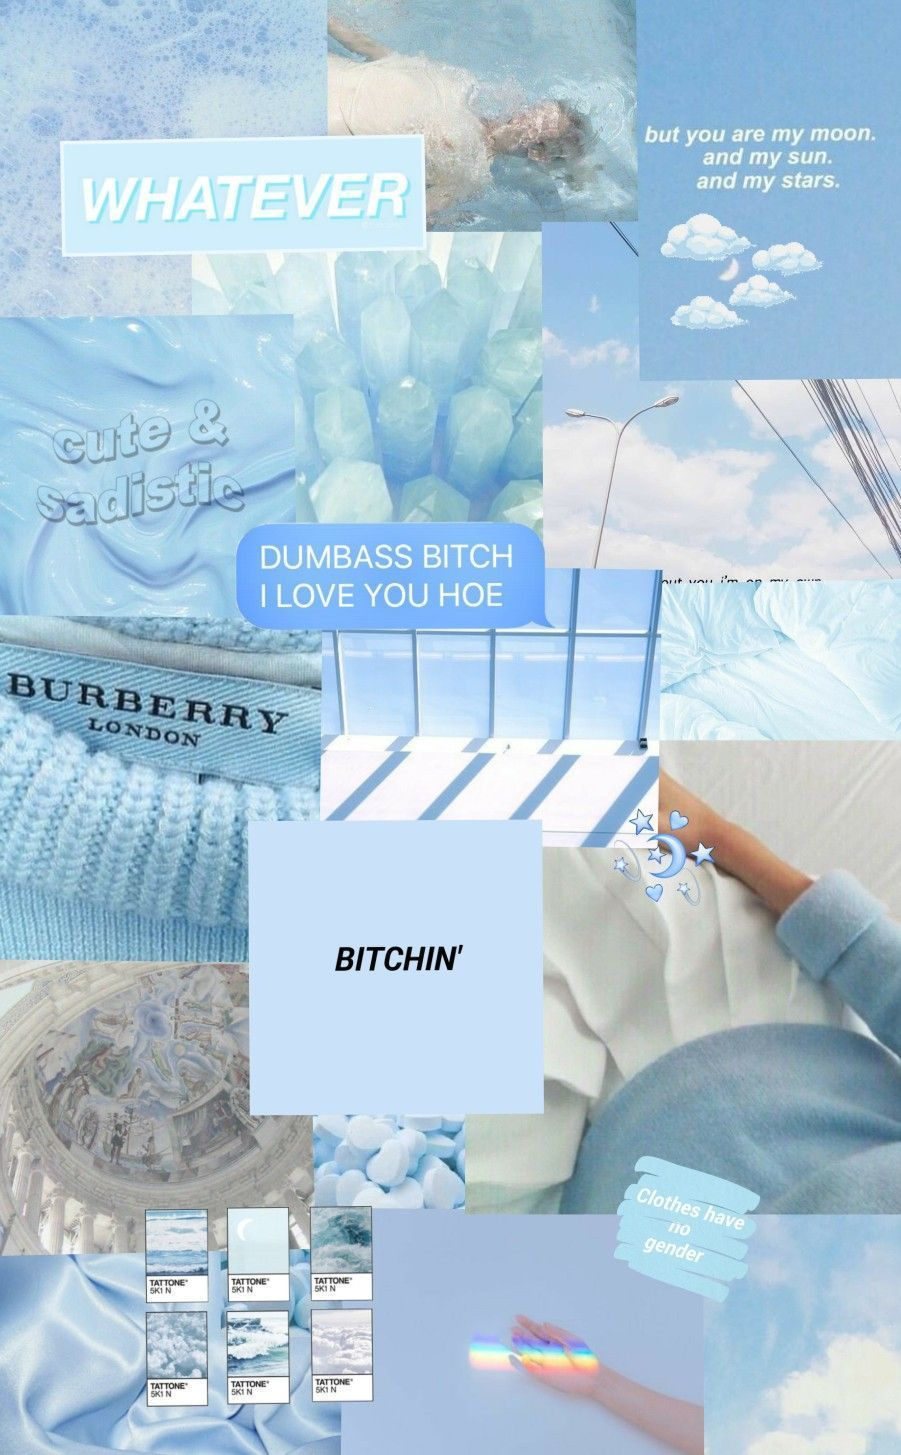 Ideas For Pictures Wallpaper Aesthetic Pastel Blue Iphone In 2020 Blue Aesthetic Pastel Blue Wallpaper Iphone Aesthetic Iphone Wallpaper